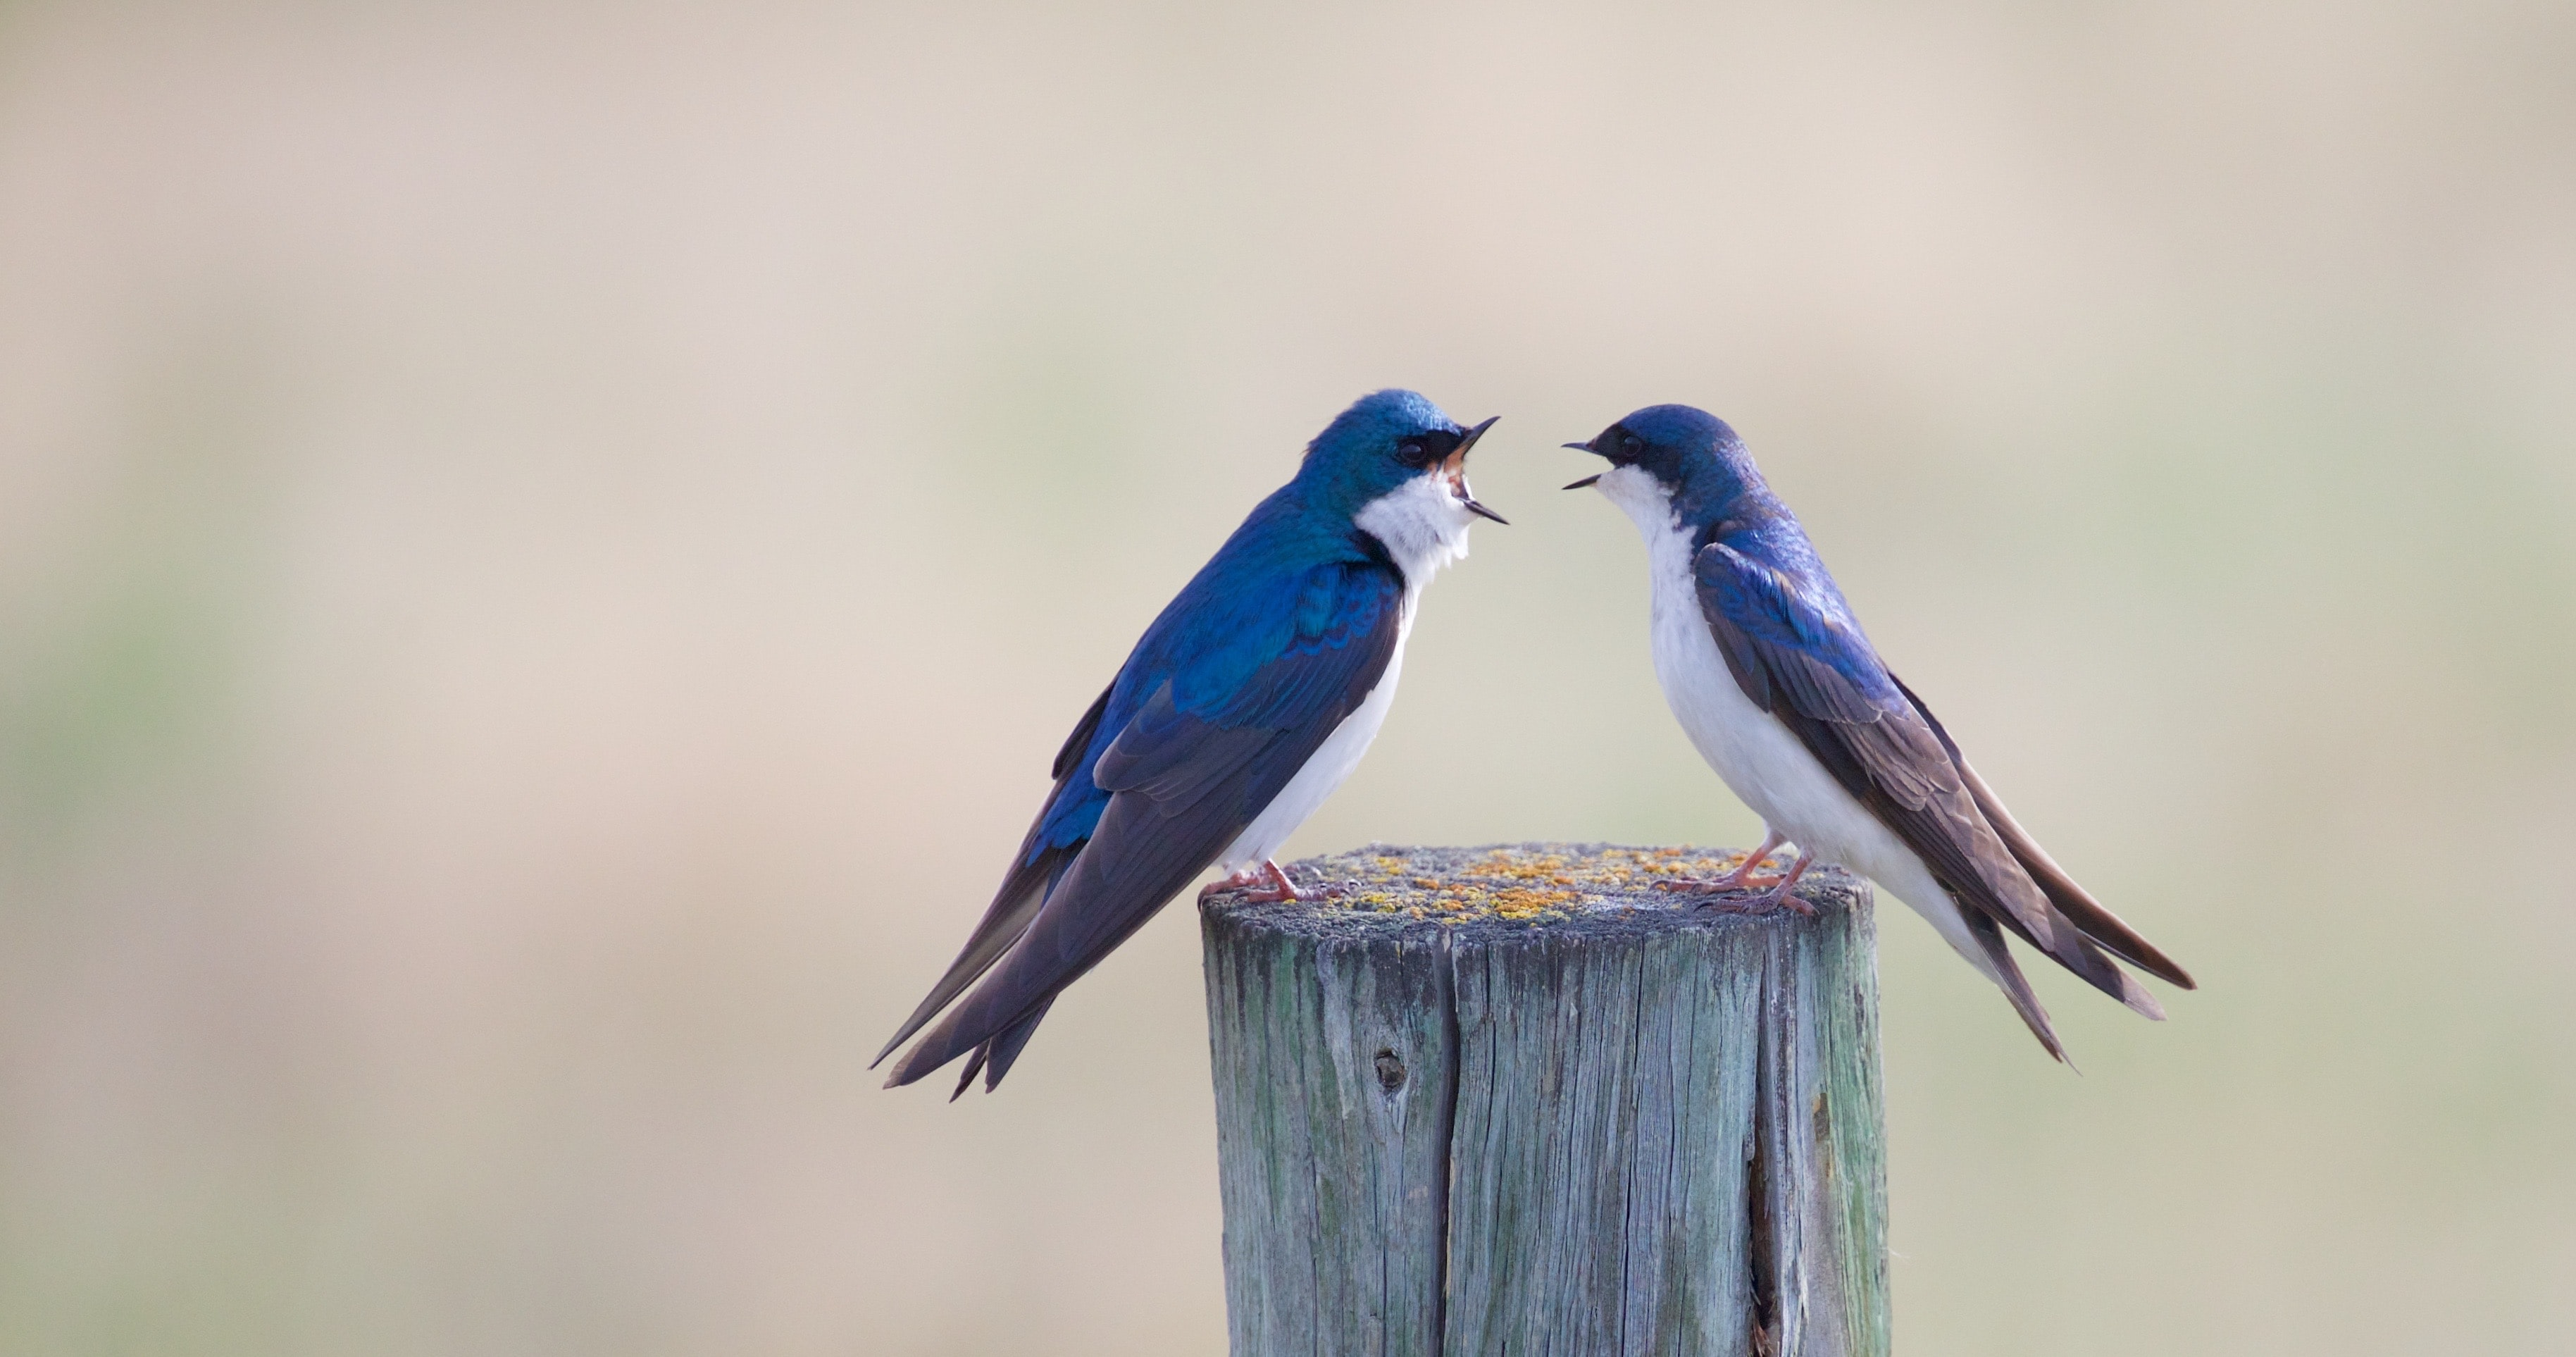 two blue birds on wooden post